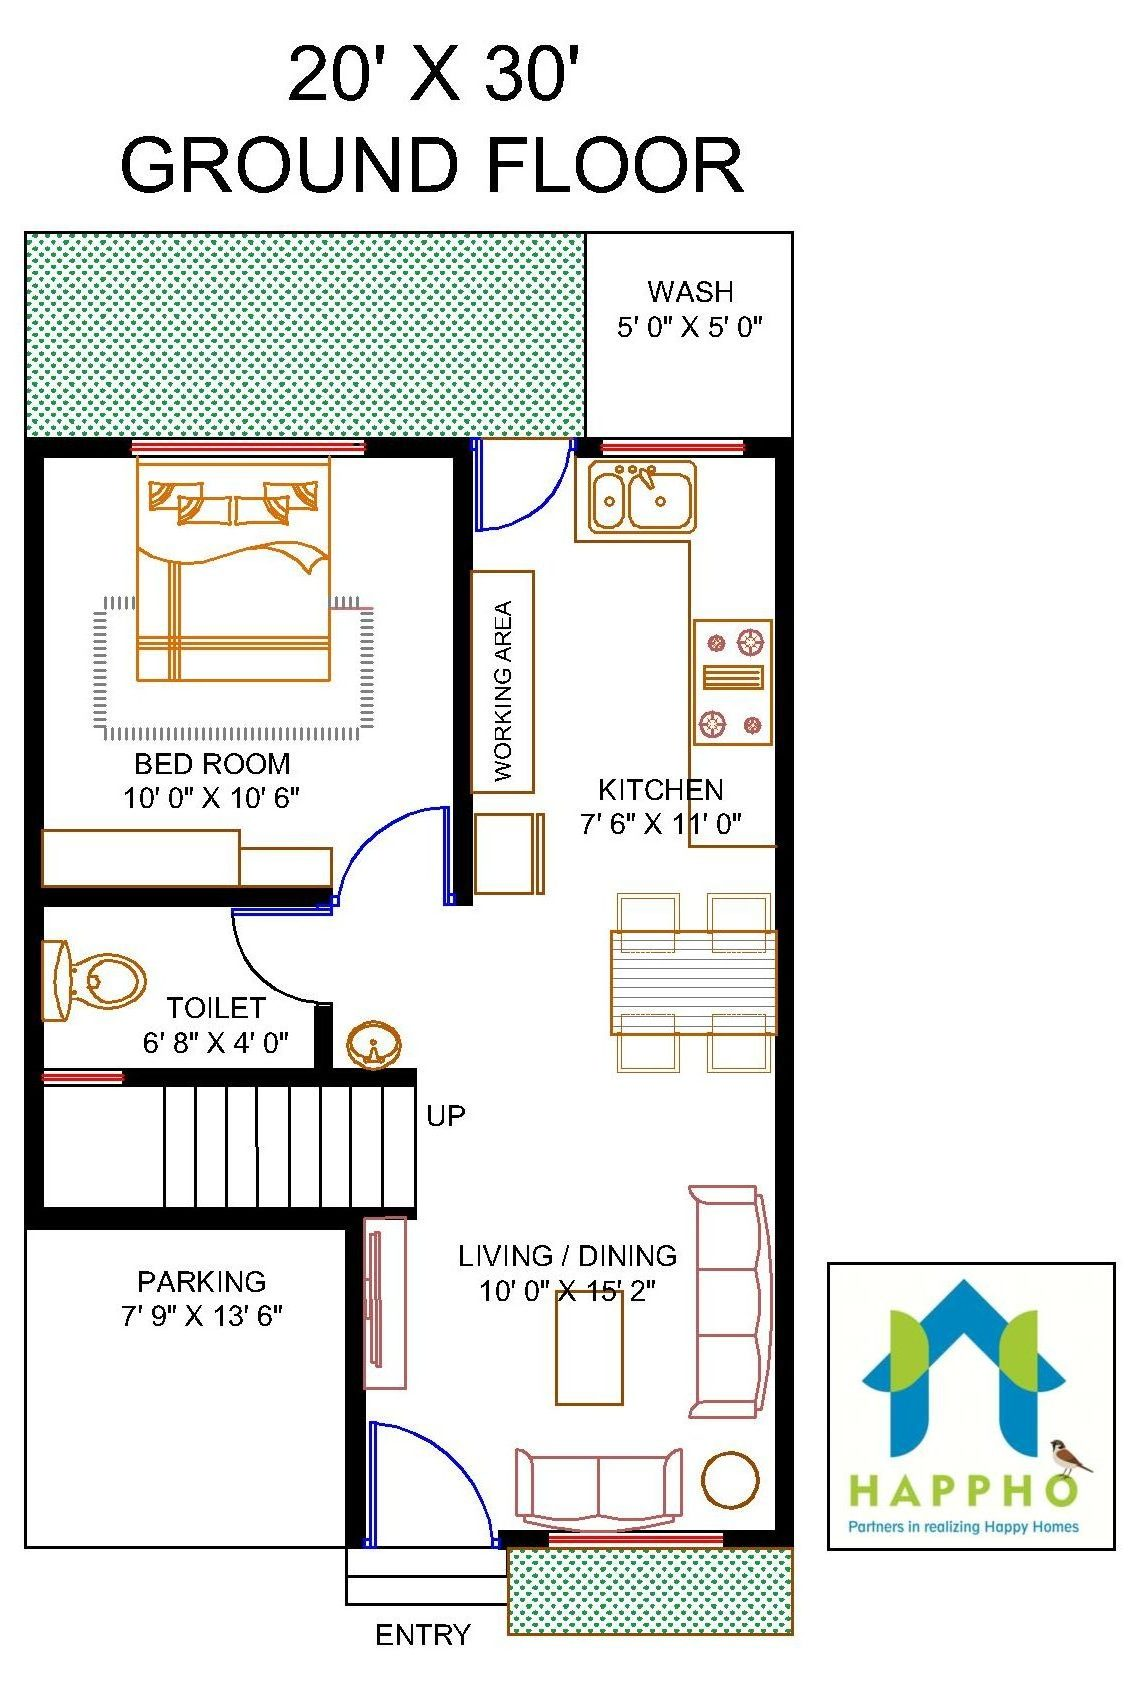 Floor Plan for 20 X 30 Feet Plot | 1-BHK (600 Square Feet/67 ... on small square house plans, small cape cod house plans, 700 square ft cabin plans, tiny house plans, 600 sq ft cabin plans, 20 by 40 house plans, 600 sq.feet floor plans, 850 sq ft cabin plans, 600 sq ft apartment plans, 400 ft studio plans, barn garage with roof plans, 400 sf house plans, new orleans shotgun style house plans, non split bedroom house plans, 20 by 30 house plans, 300 sq ft studio plans, 20000 house plans, 200 sq ft cabin plans, 600 s.f. house plans, 600 sf home floor plans,